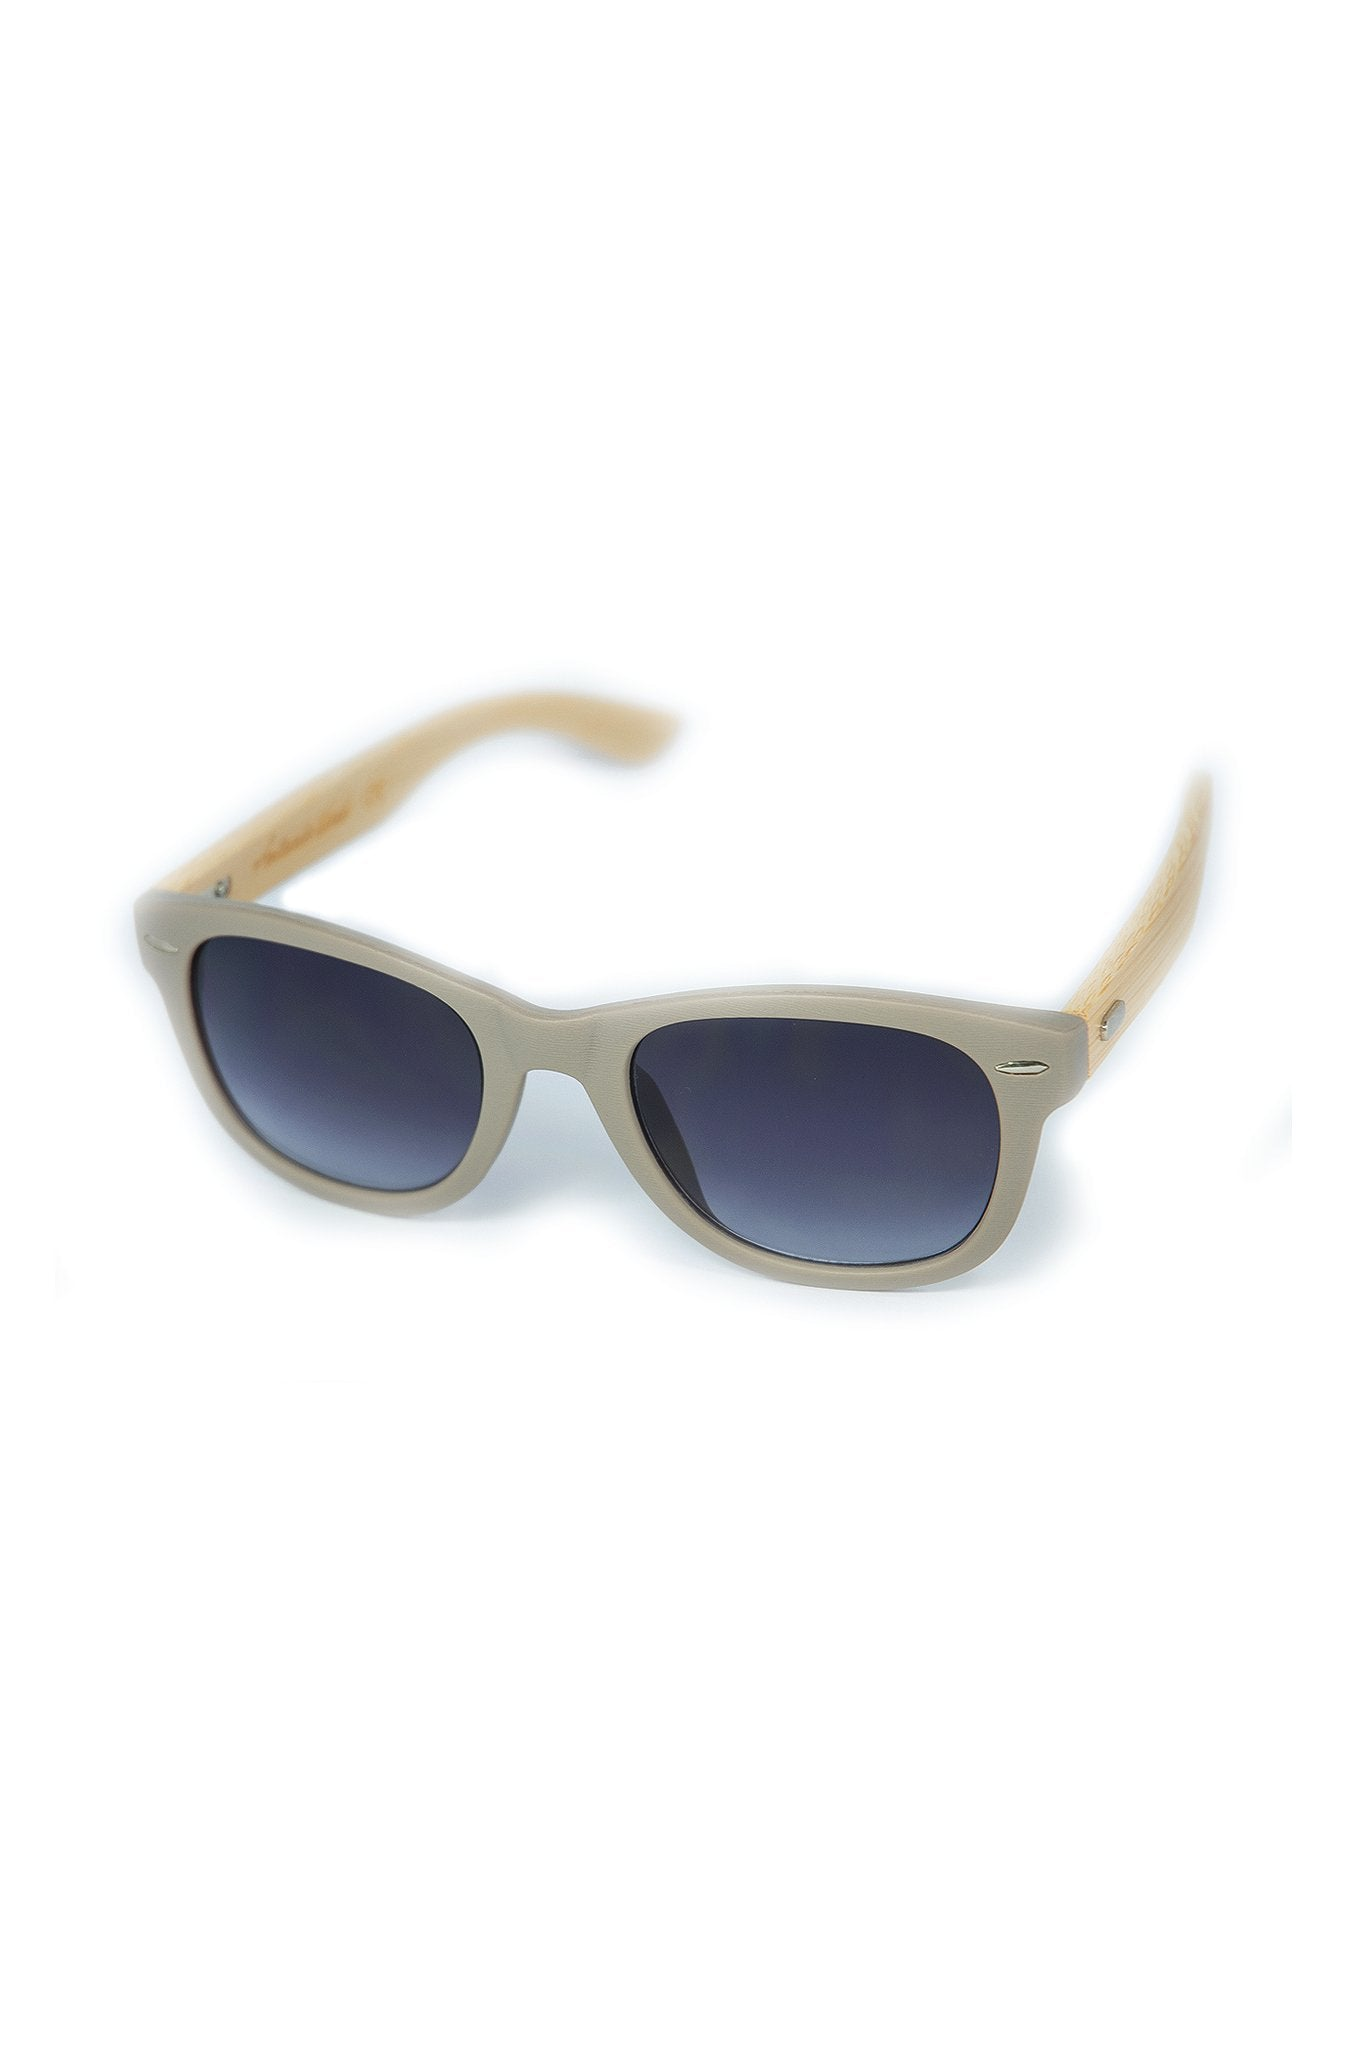 Trento Grey Sunglasses - Komodo Fashion